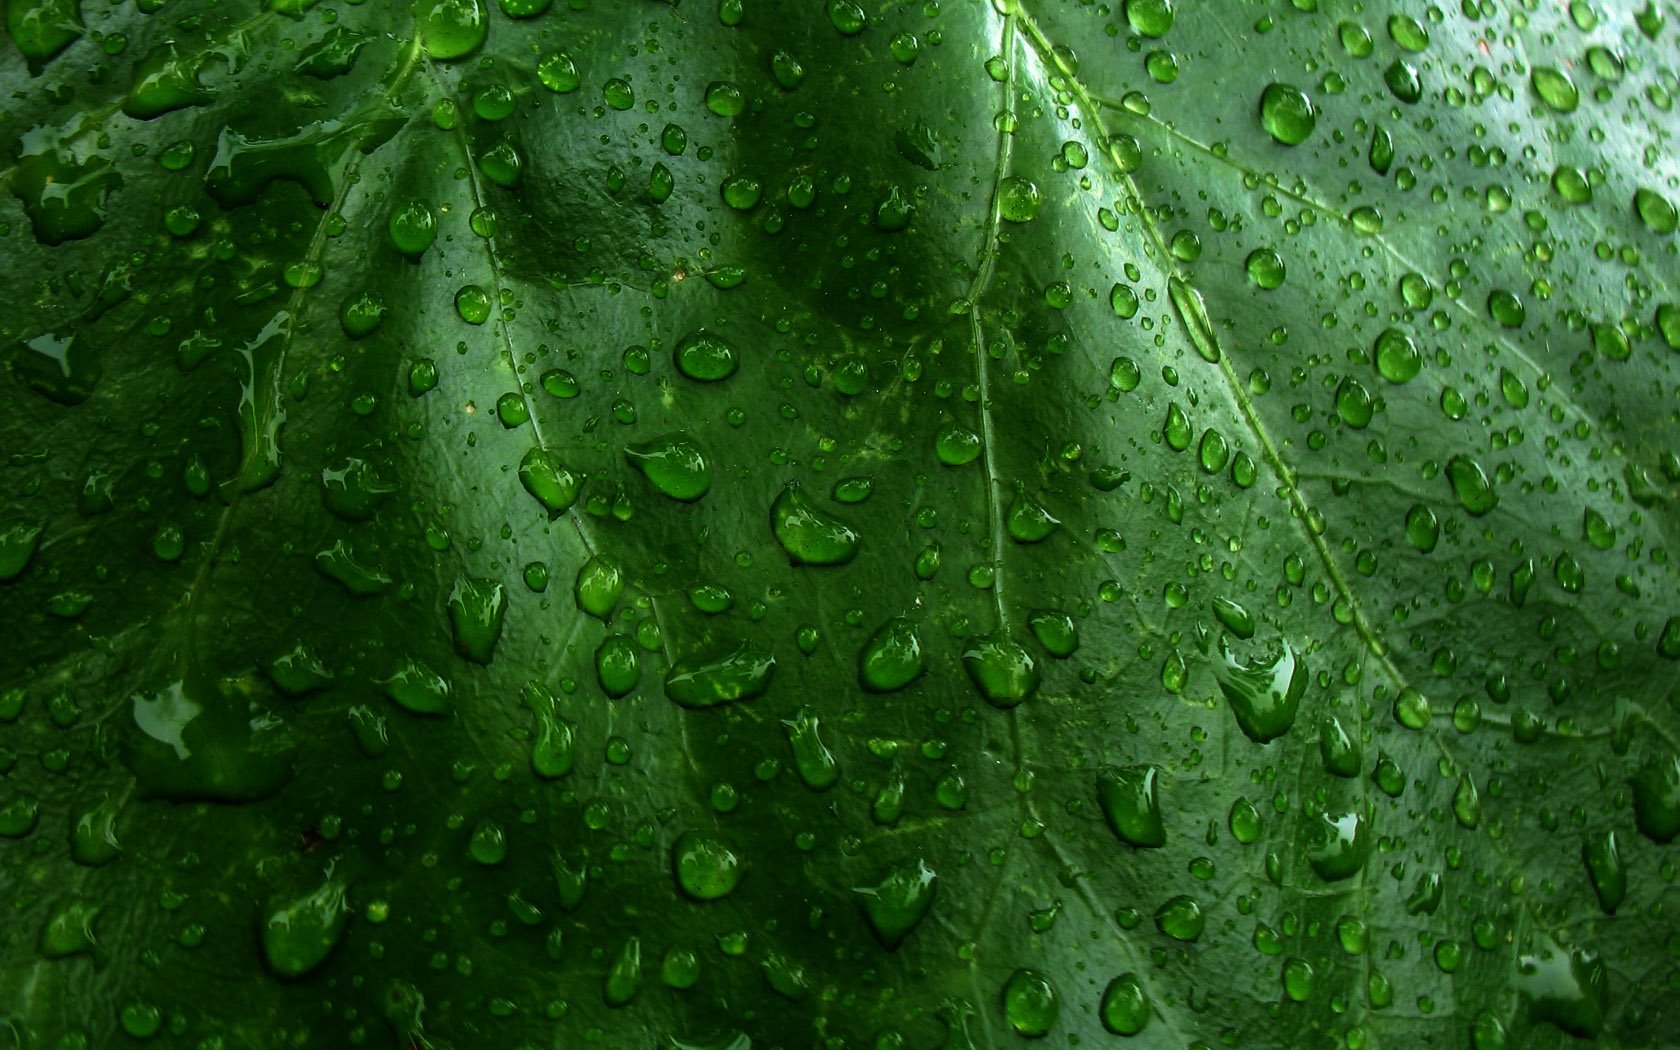 Earth - Water Drop  Raindrops Plant Wallpaper